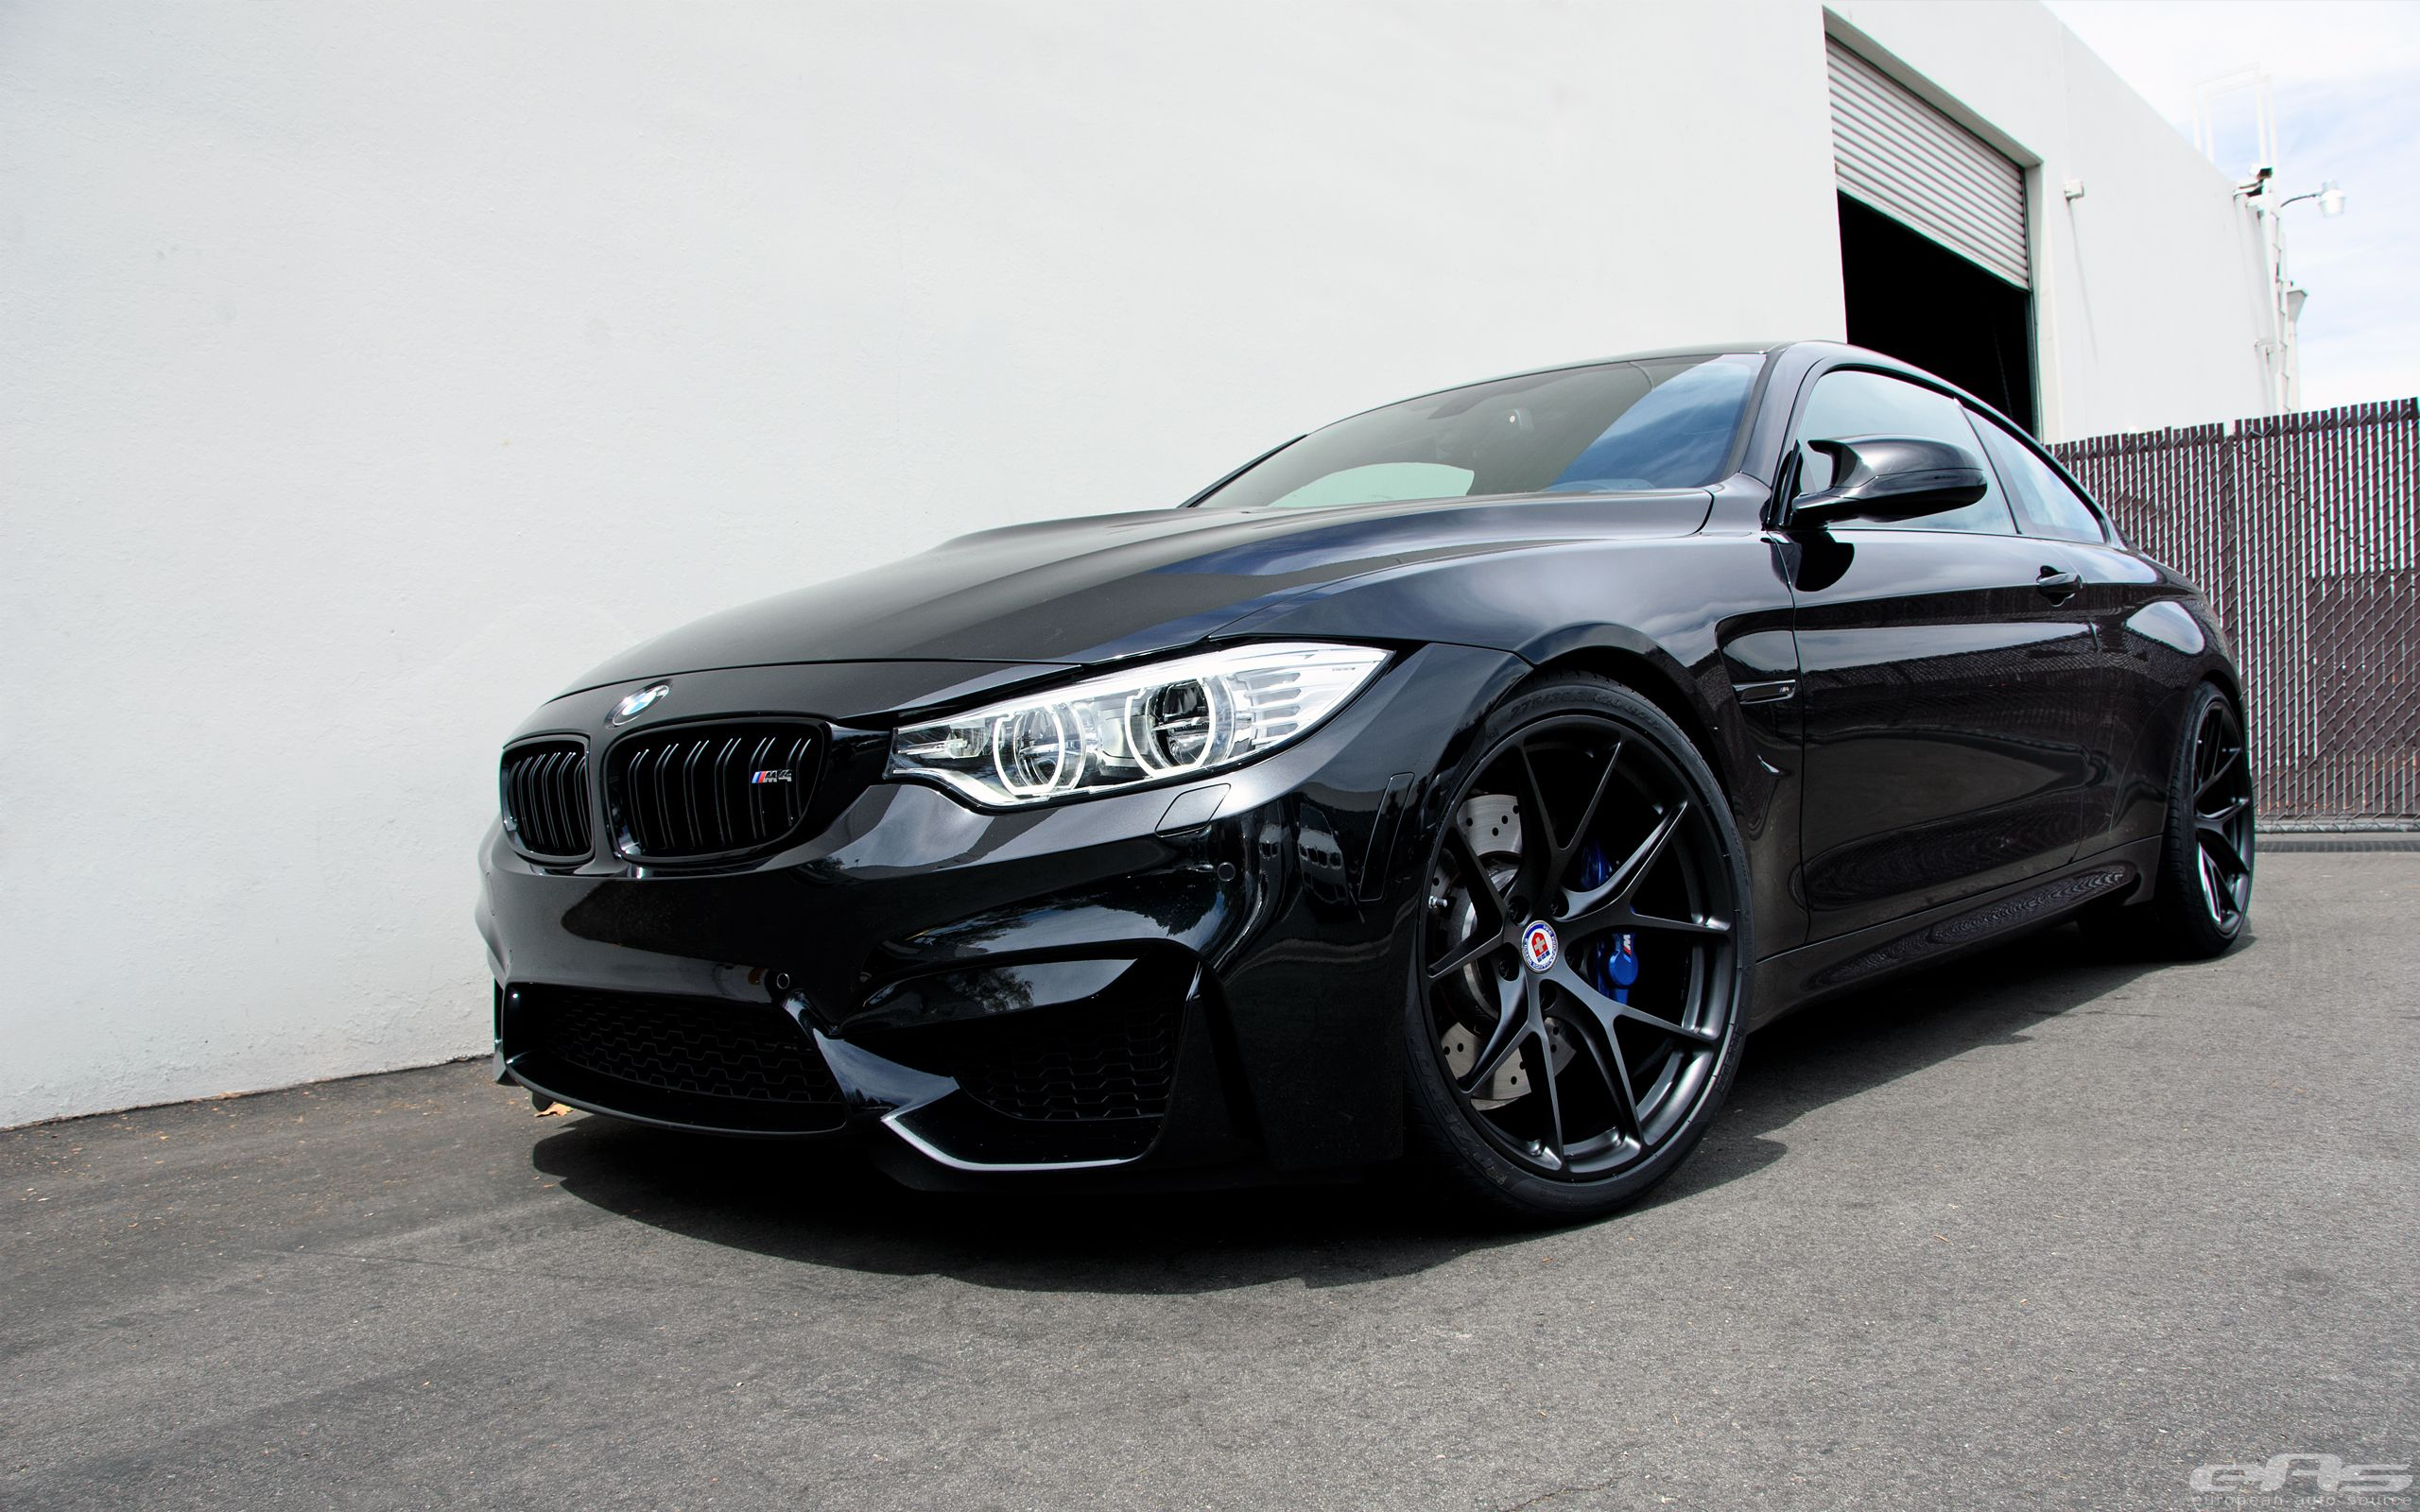 A Black Sapphire BMW M4 with a set of HRE P101 wheels in Matte Black